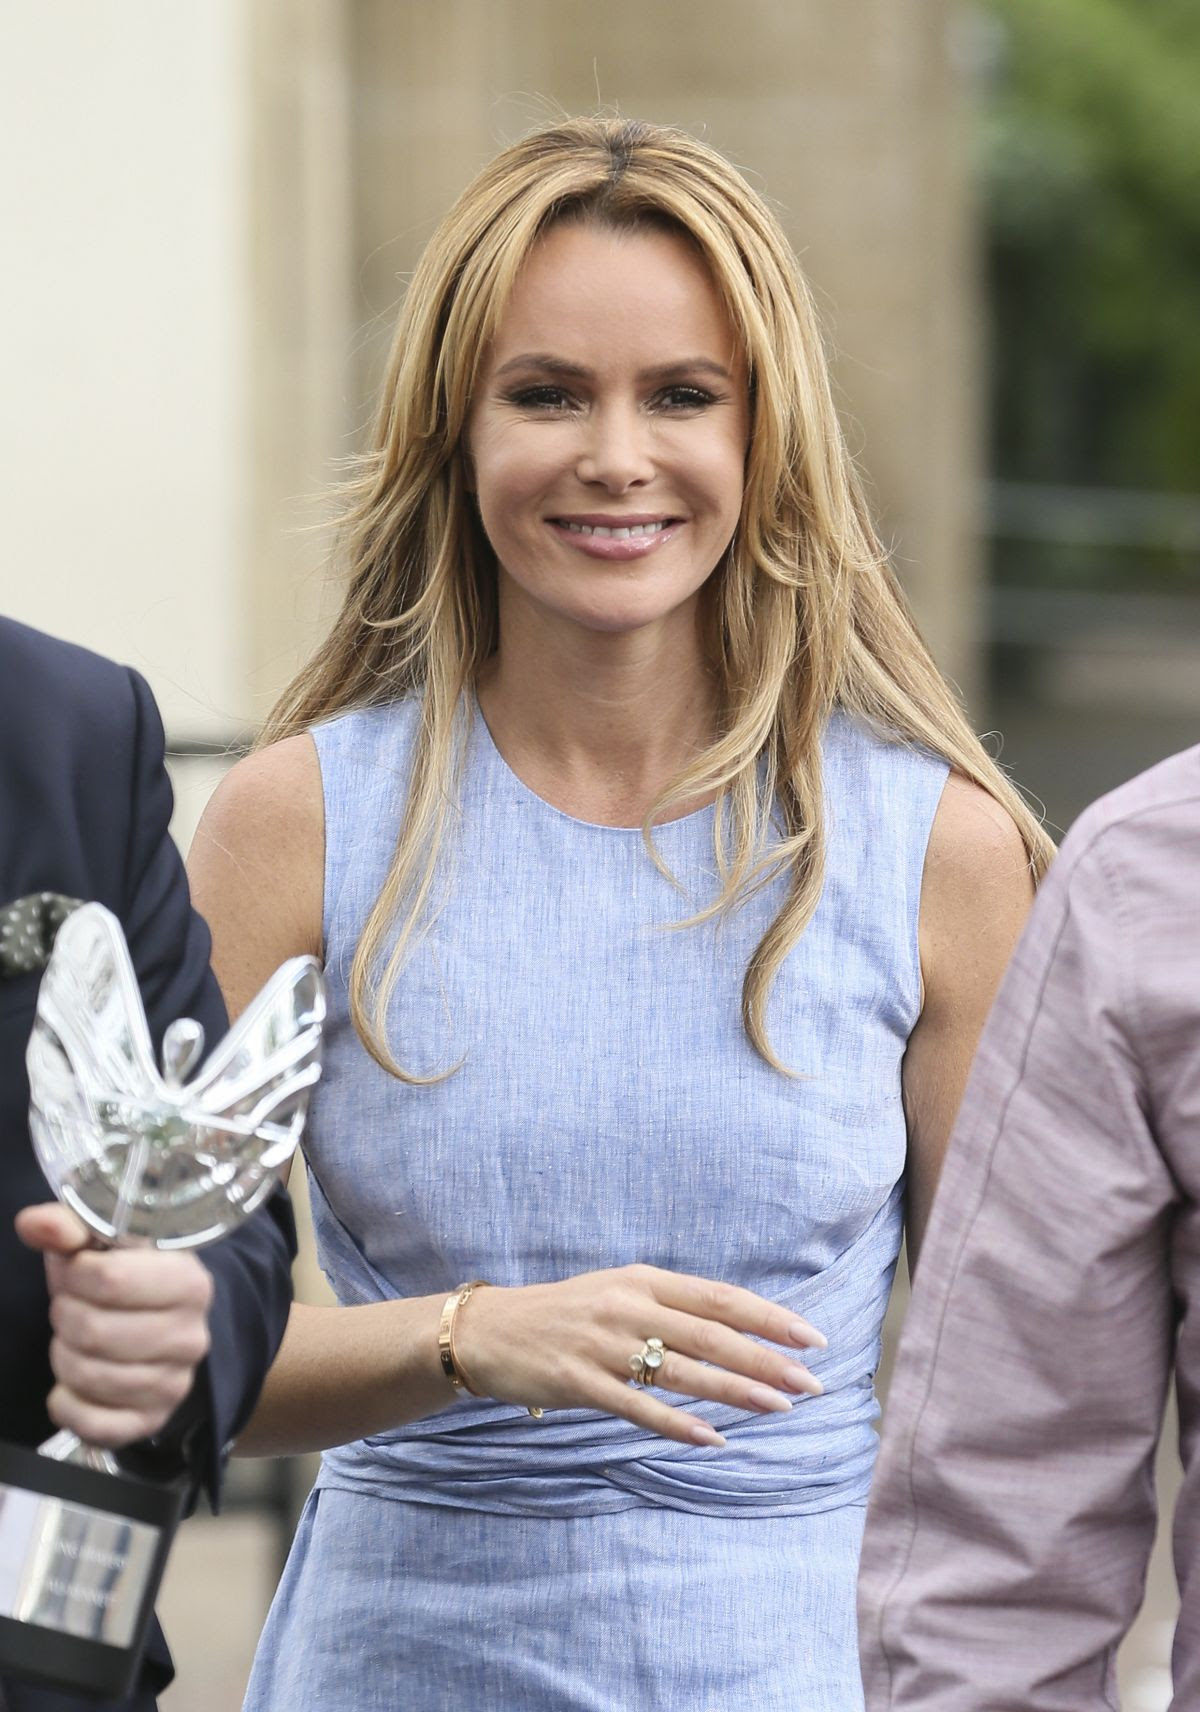 AMANDA HOLDEN at ITV Studios in London 06/08/2015